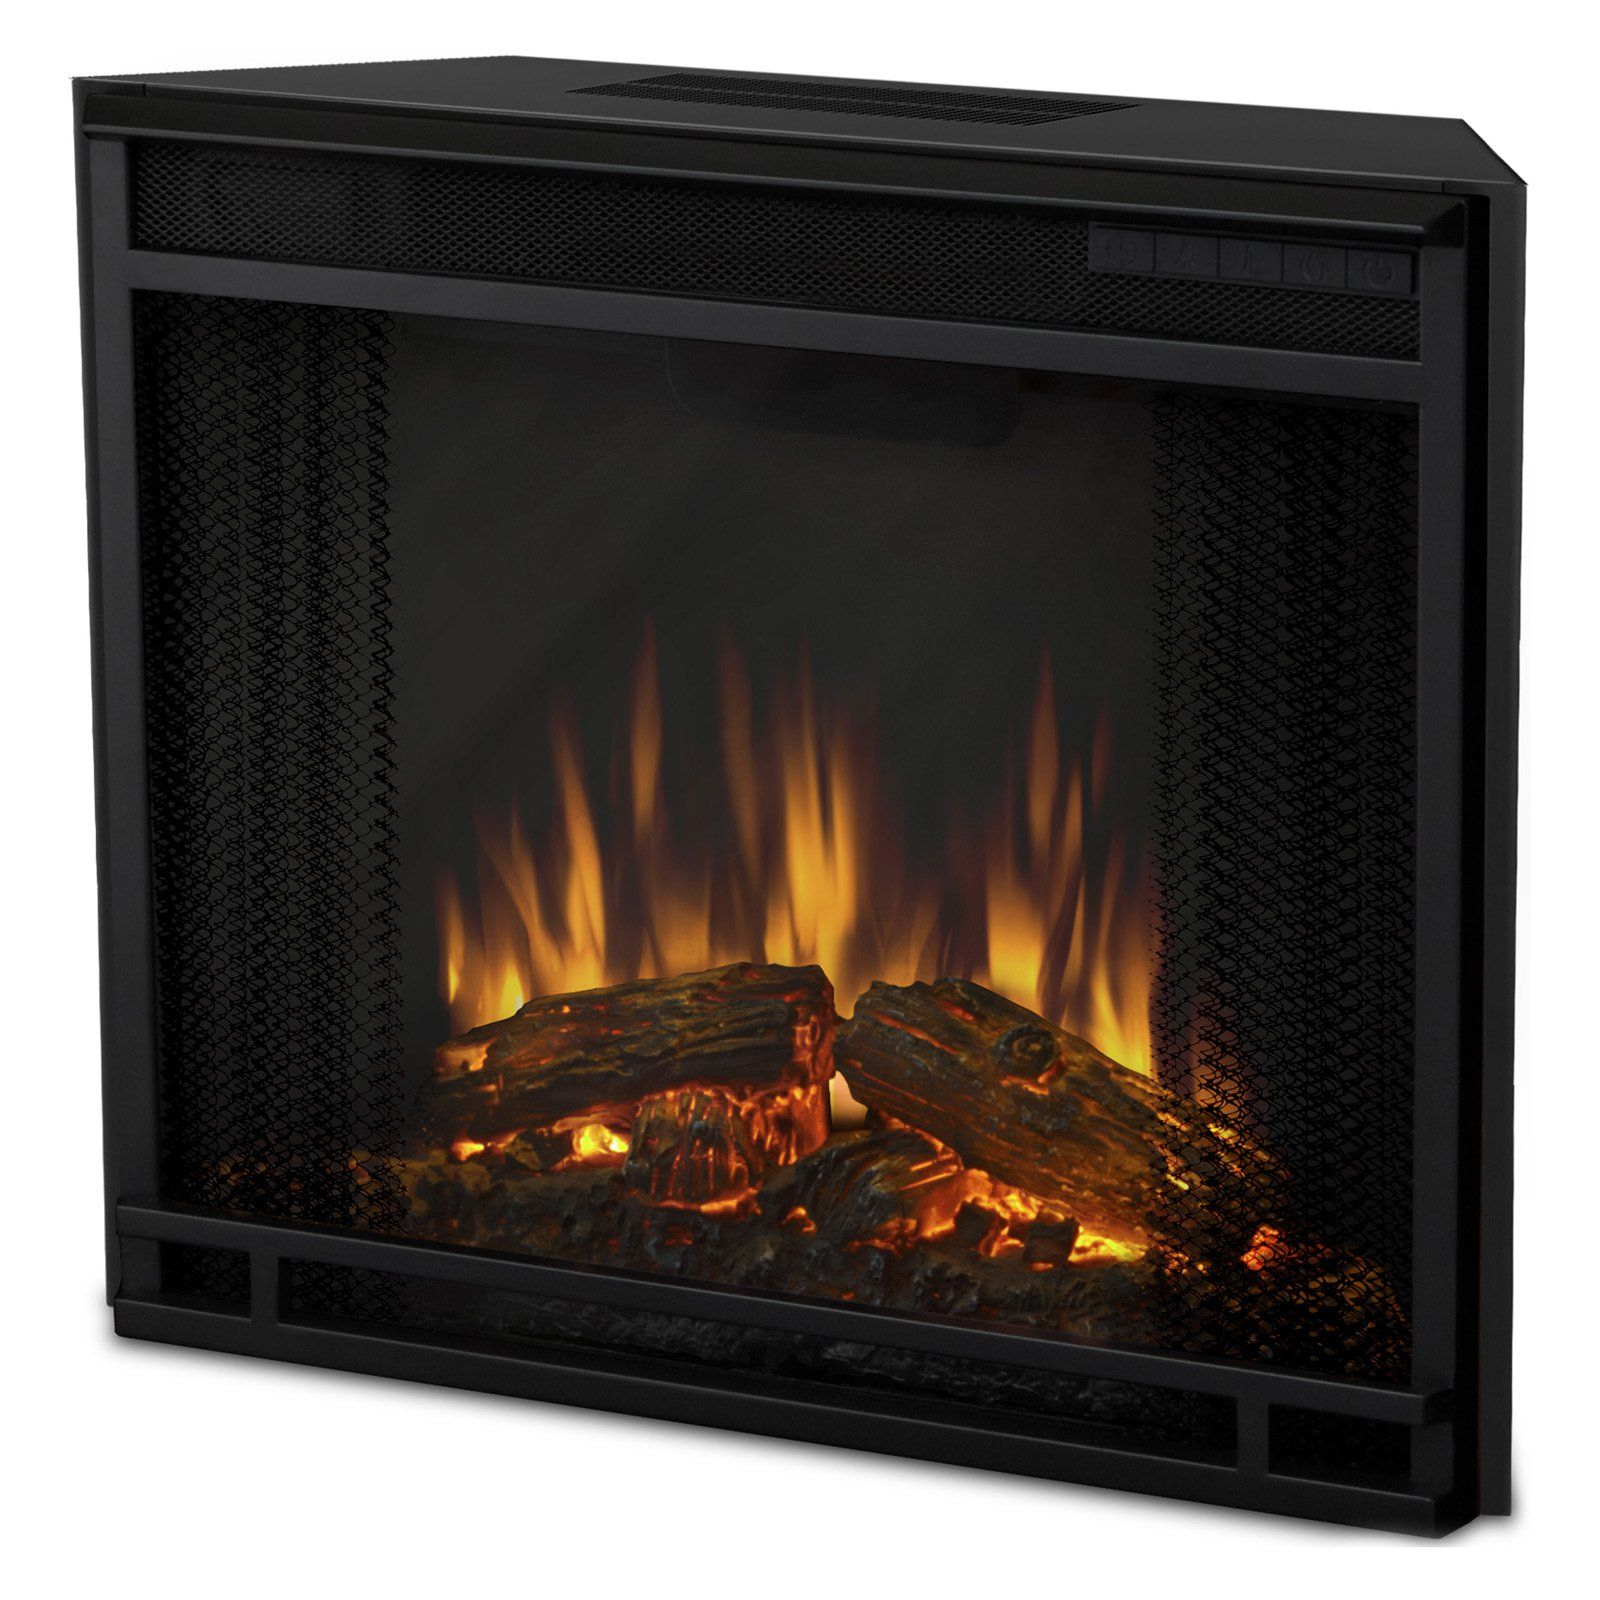 procom 32 zero clearance fireplace insert with remote model